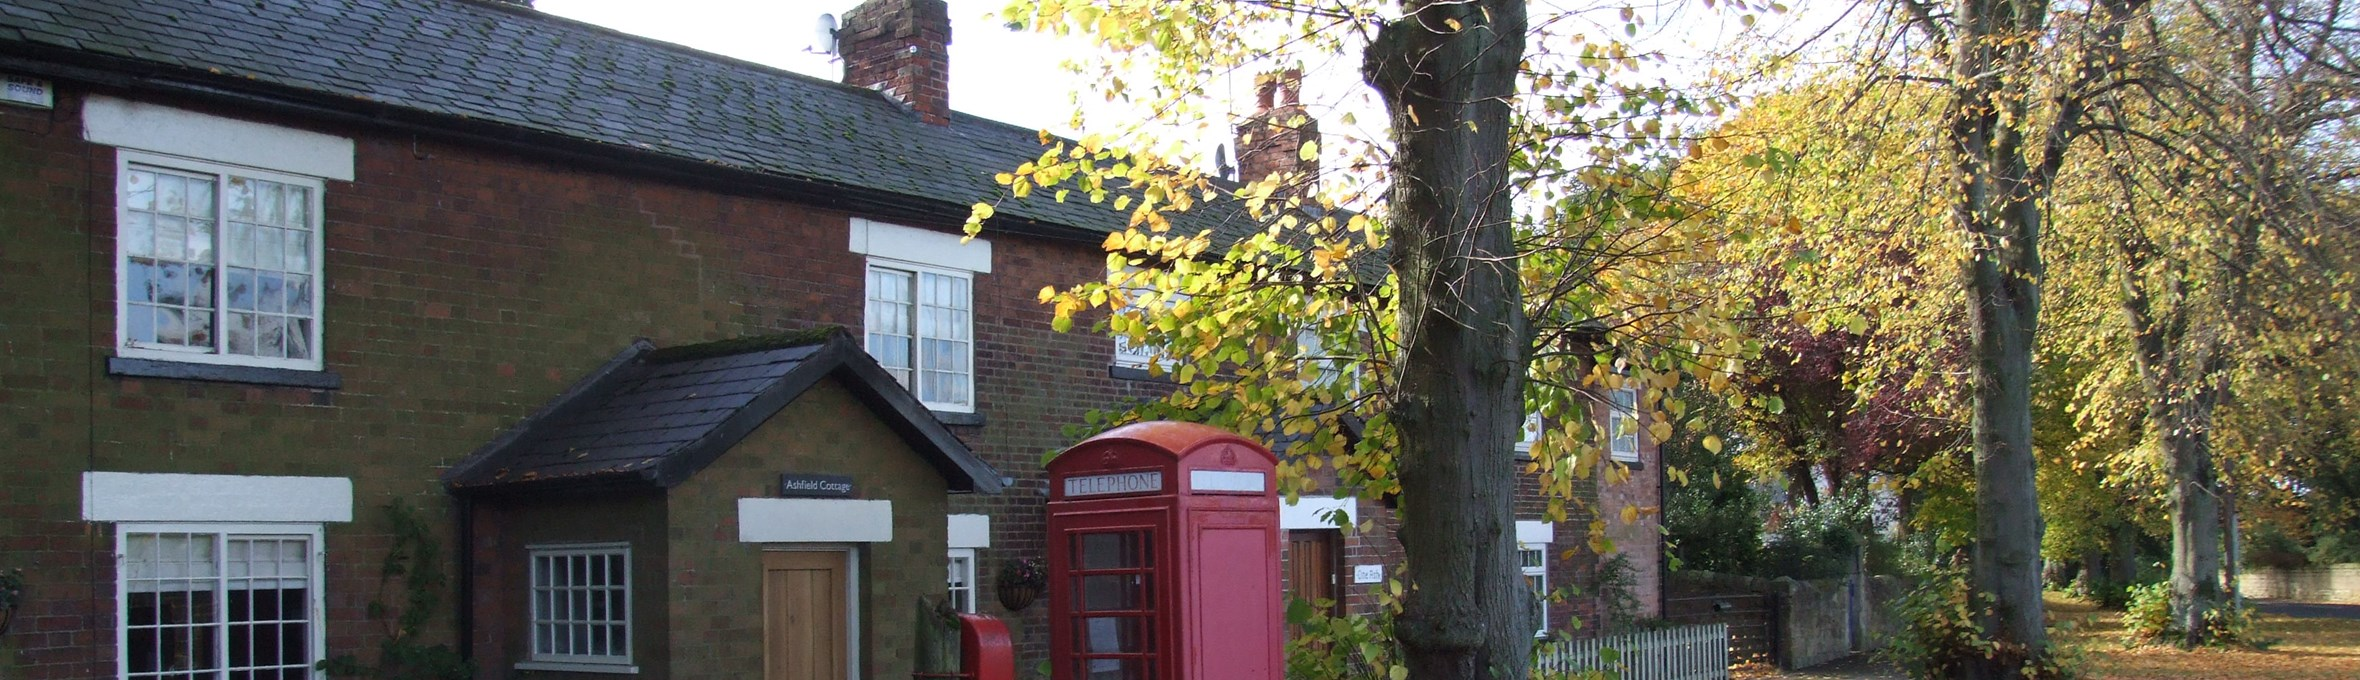 Row of brick cottages under trees with red phone box